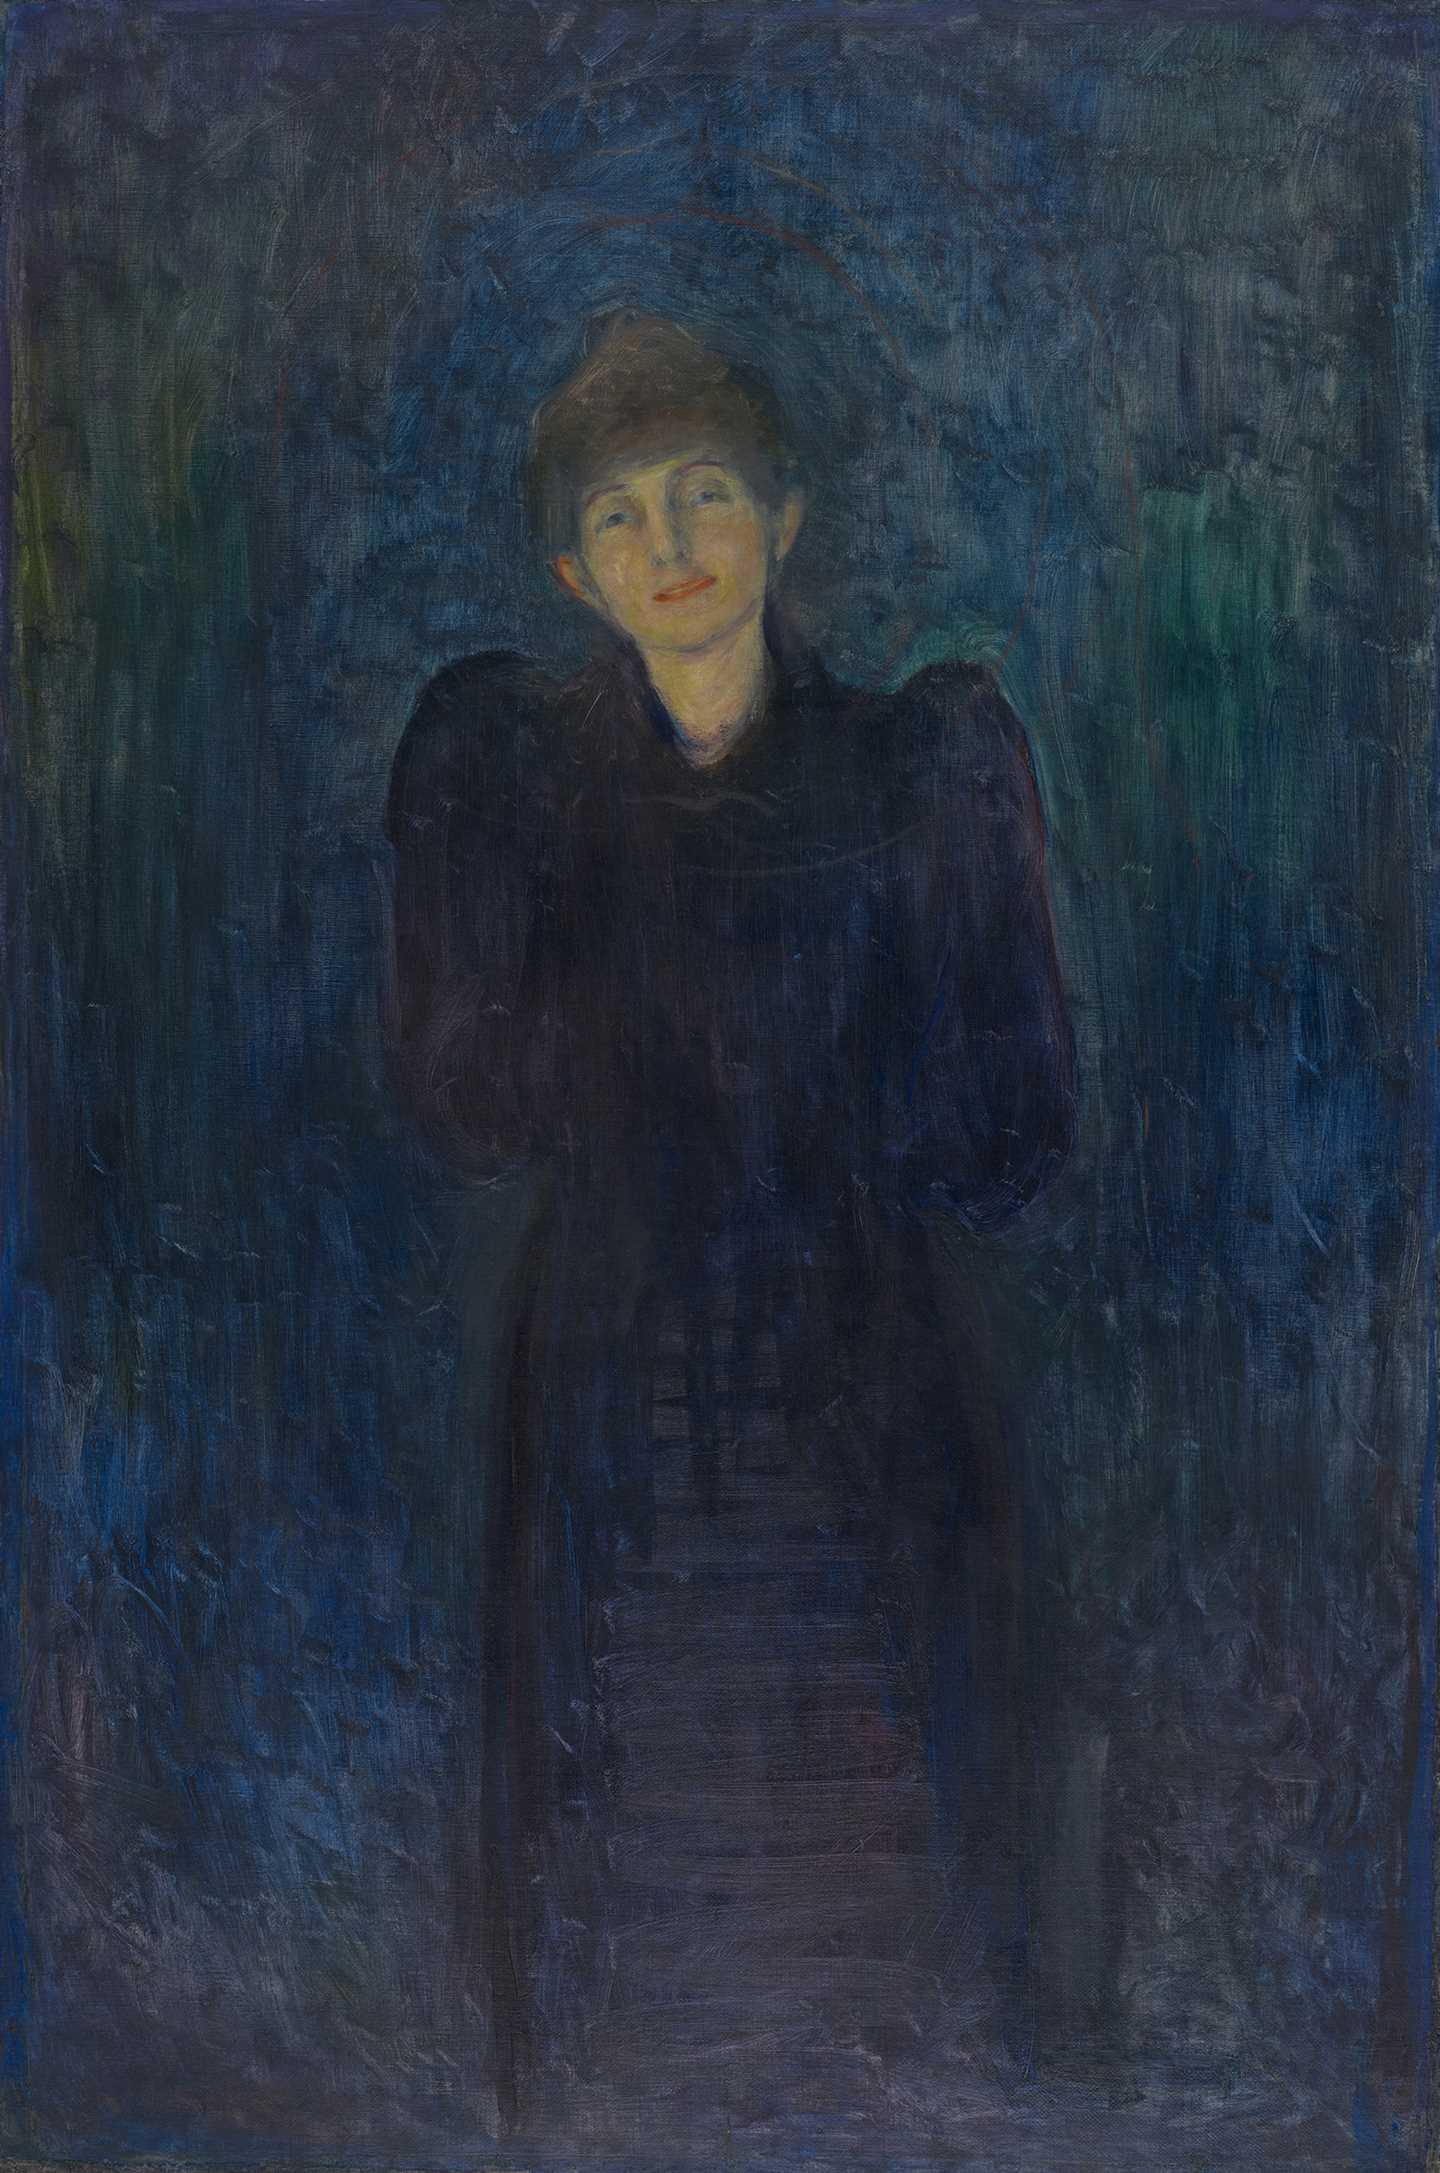 Edvard Munch: Dagny Juel Przybyszewska. Oil(?) on canvas, 1893. Photo © Munchmuseet